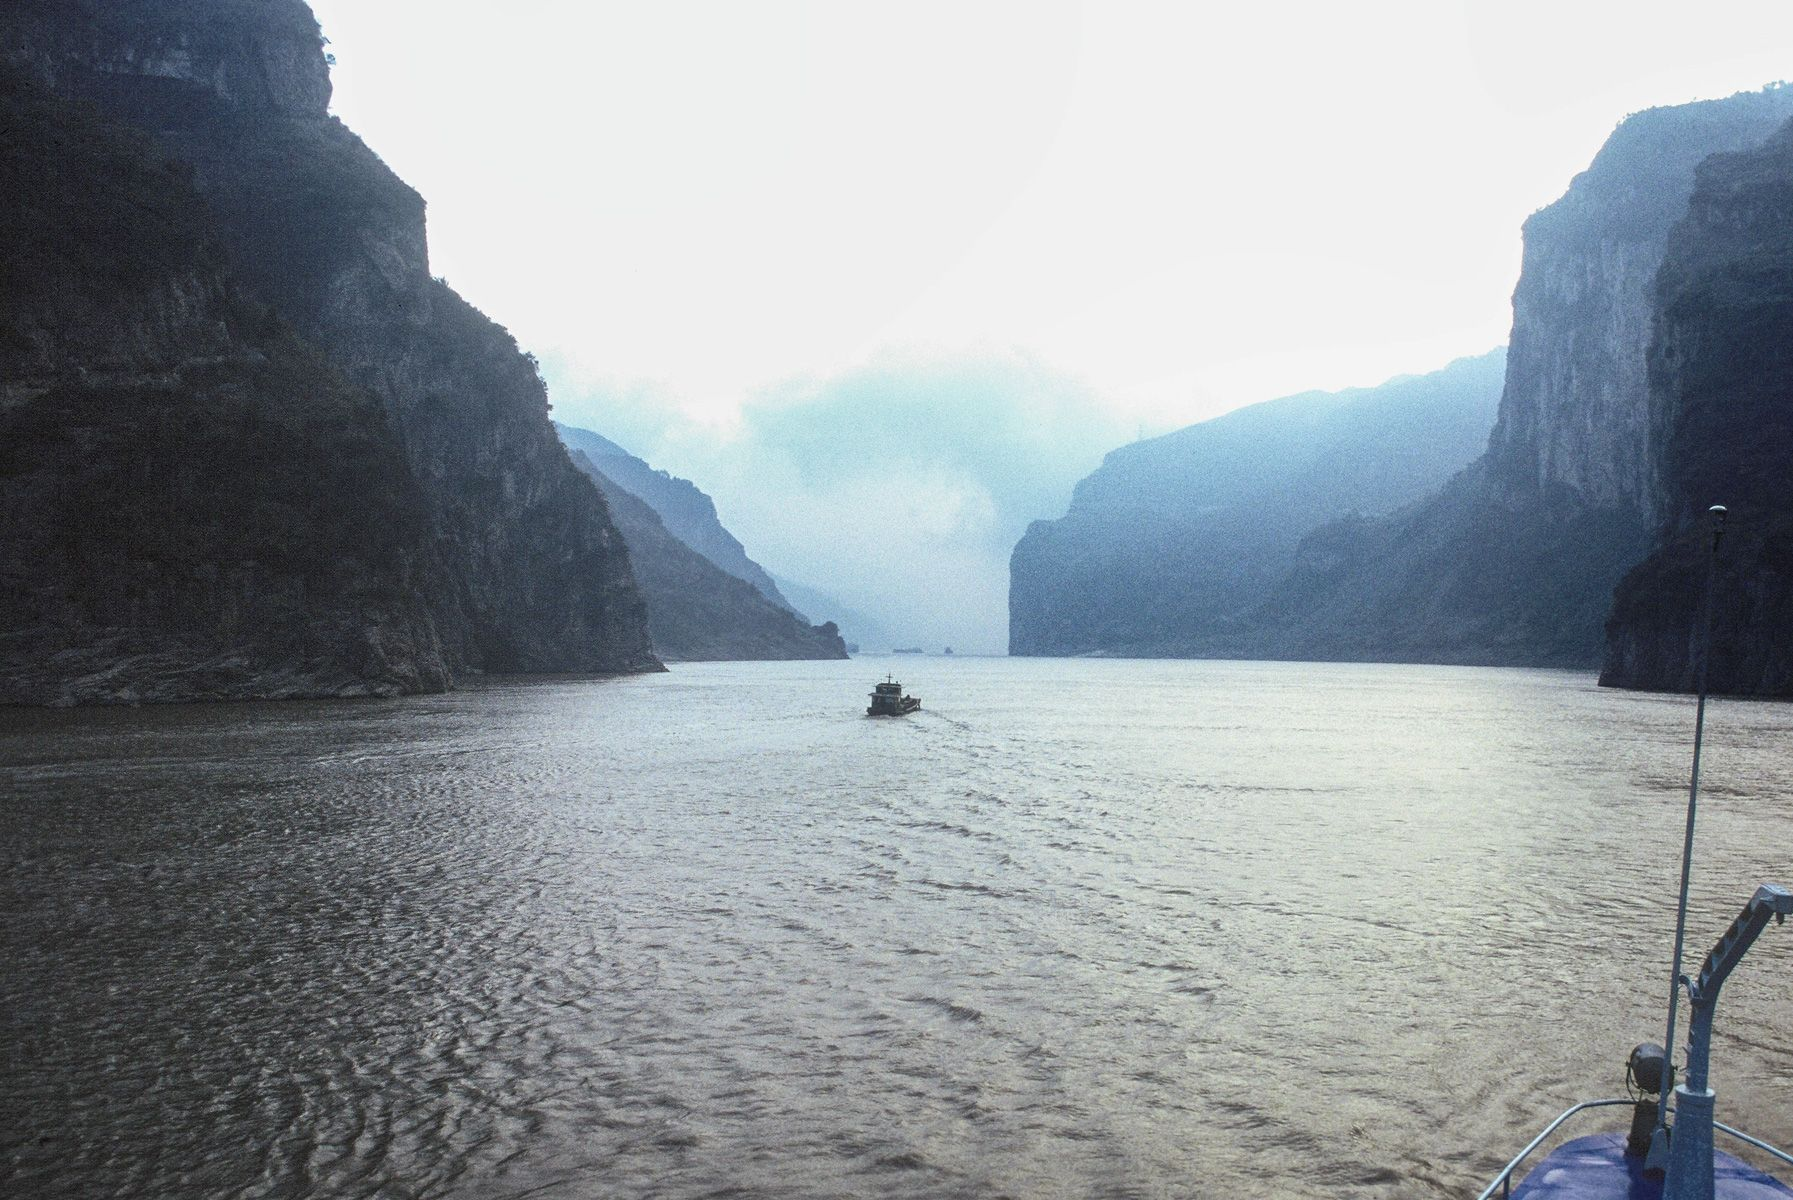 Wu Gorge Before The Dam